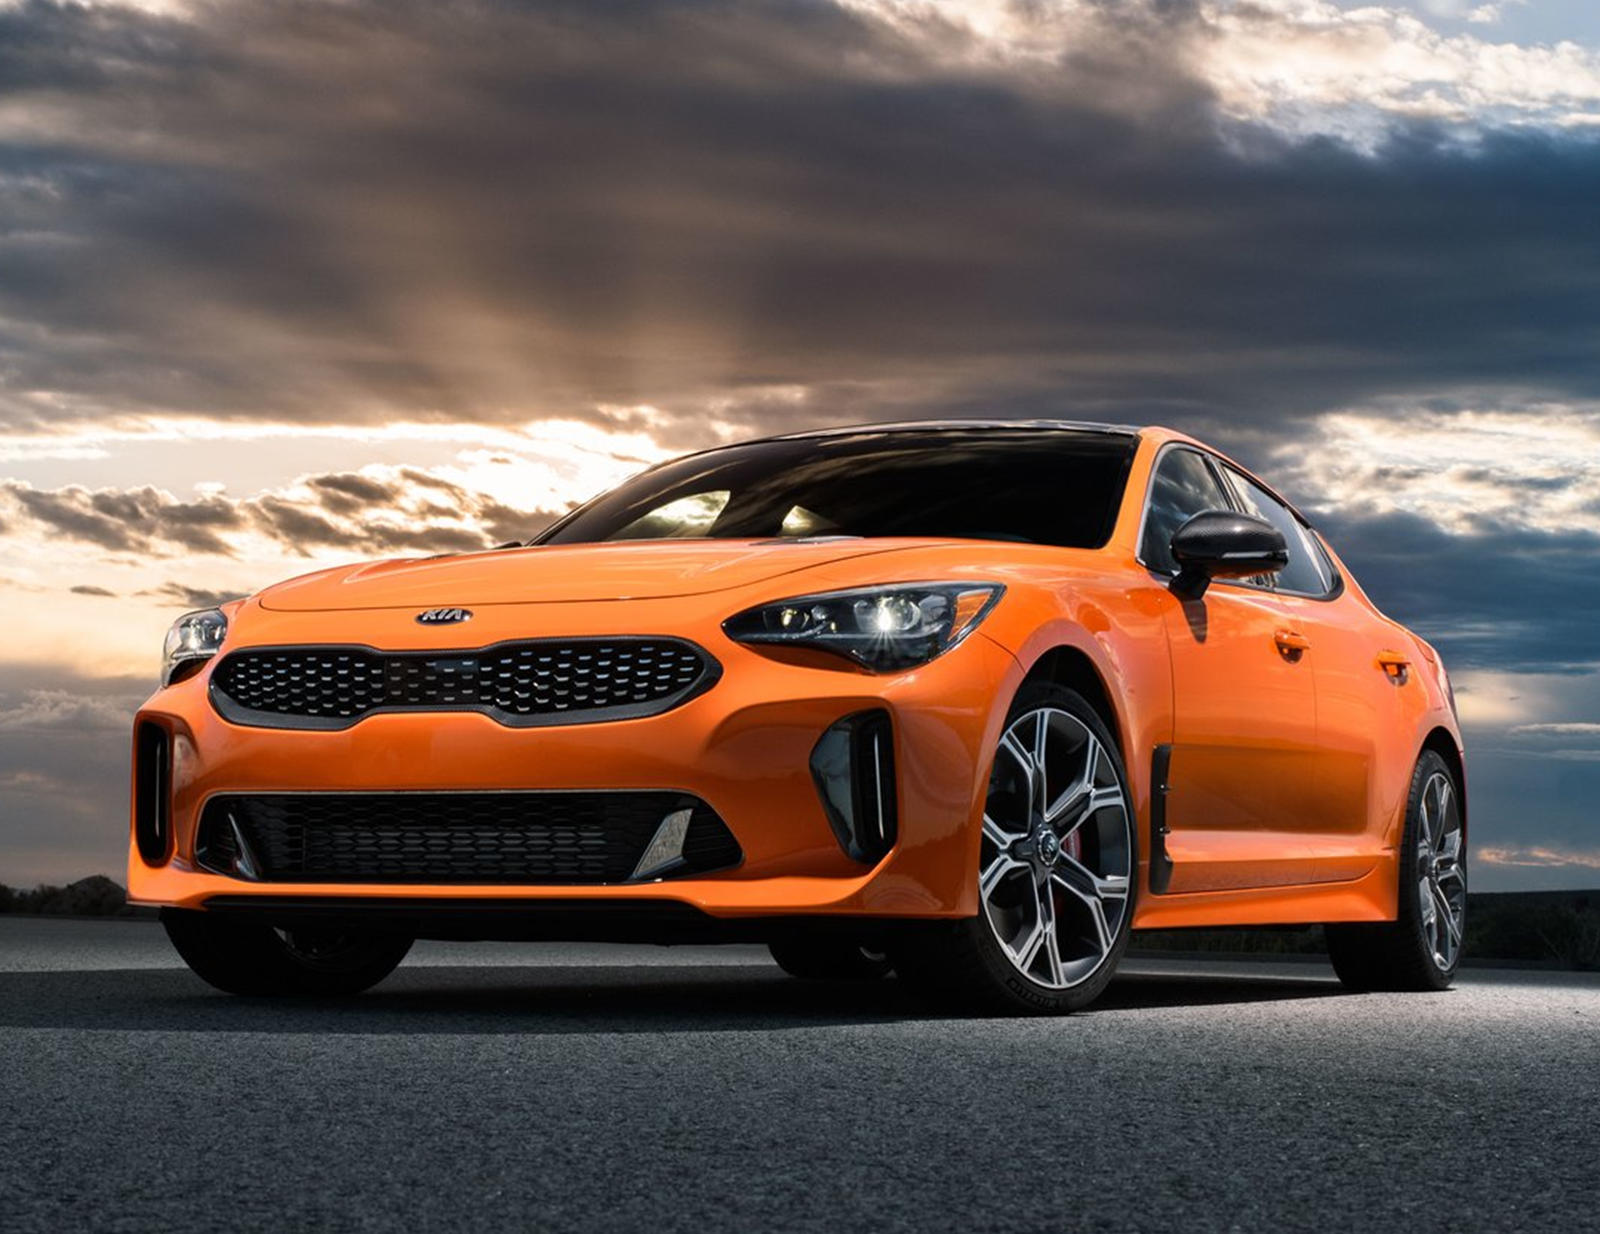 Kia Won't Tell Buyers About These Secret Stinger Deals